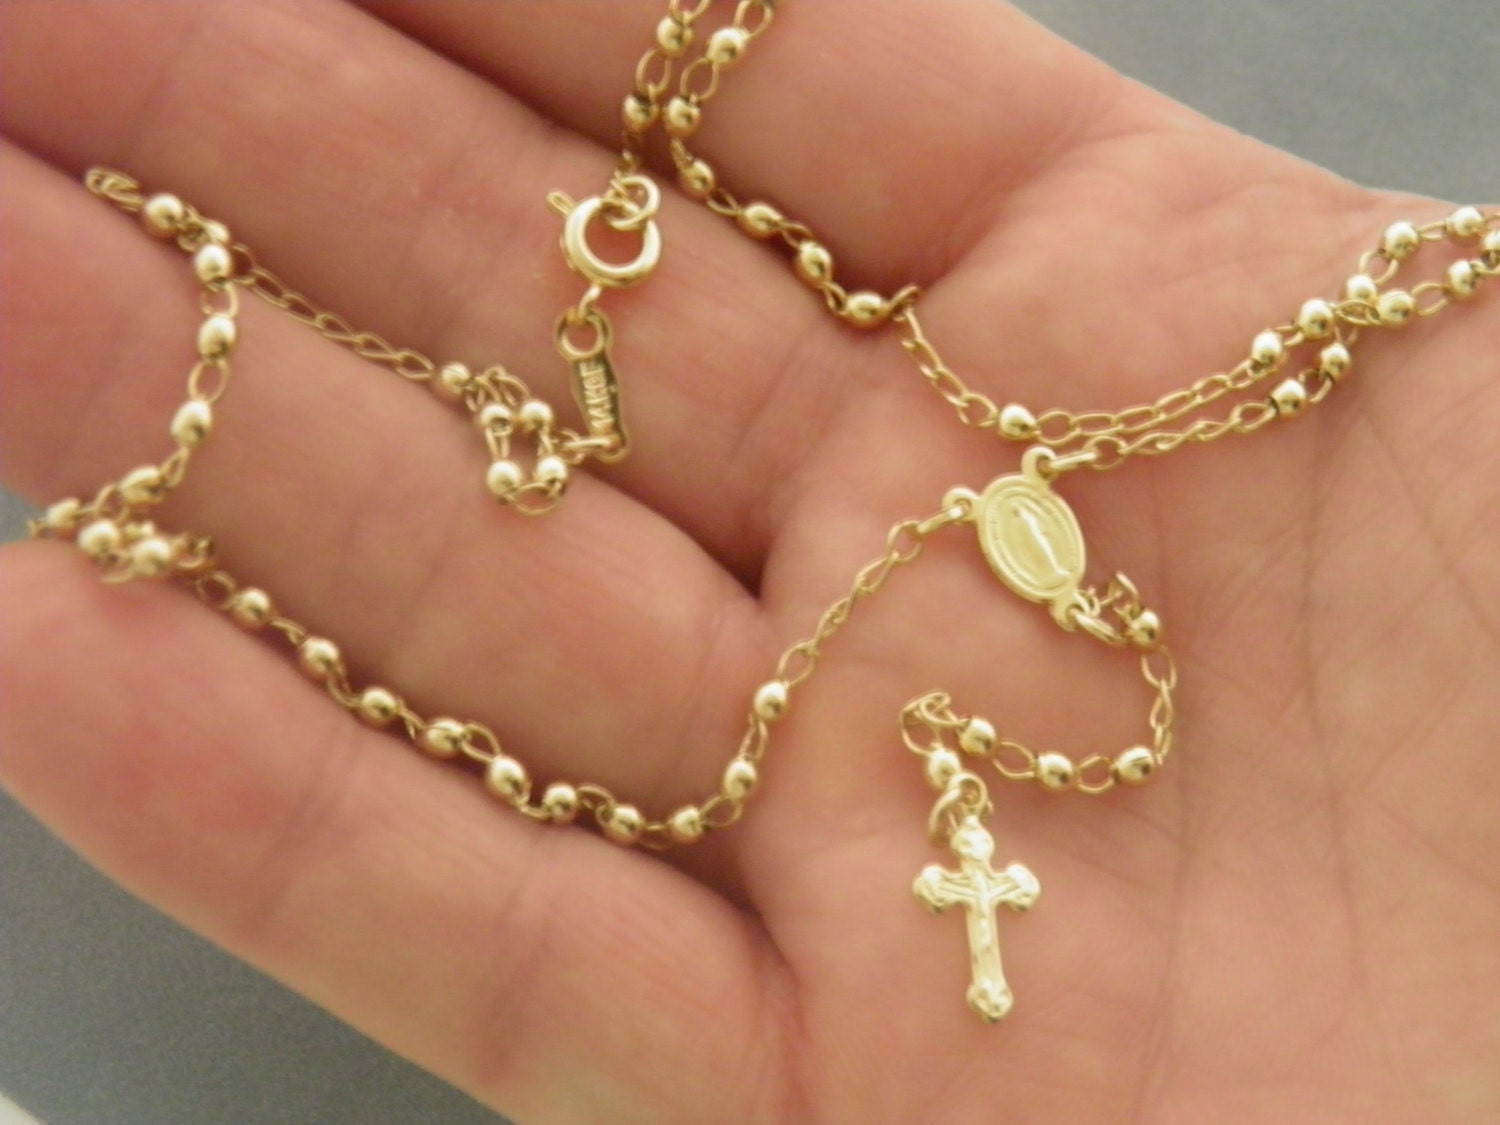 Gold Filled Little Rosary Necklace w clasp Delicate Look Gold